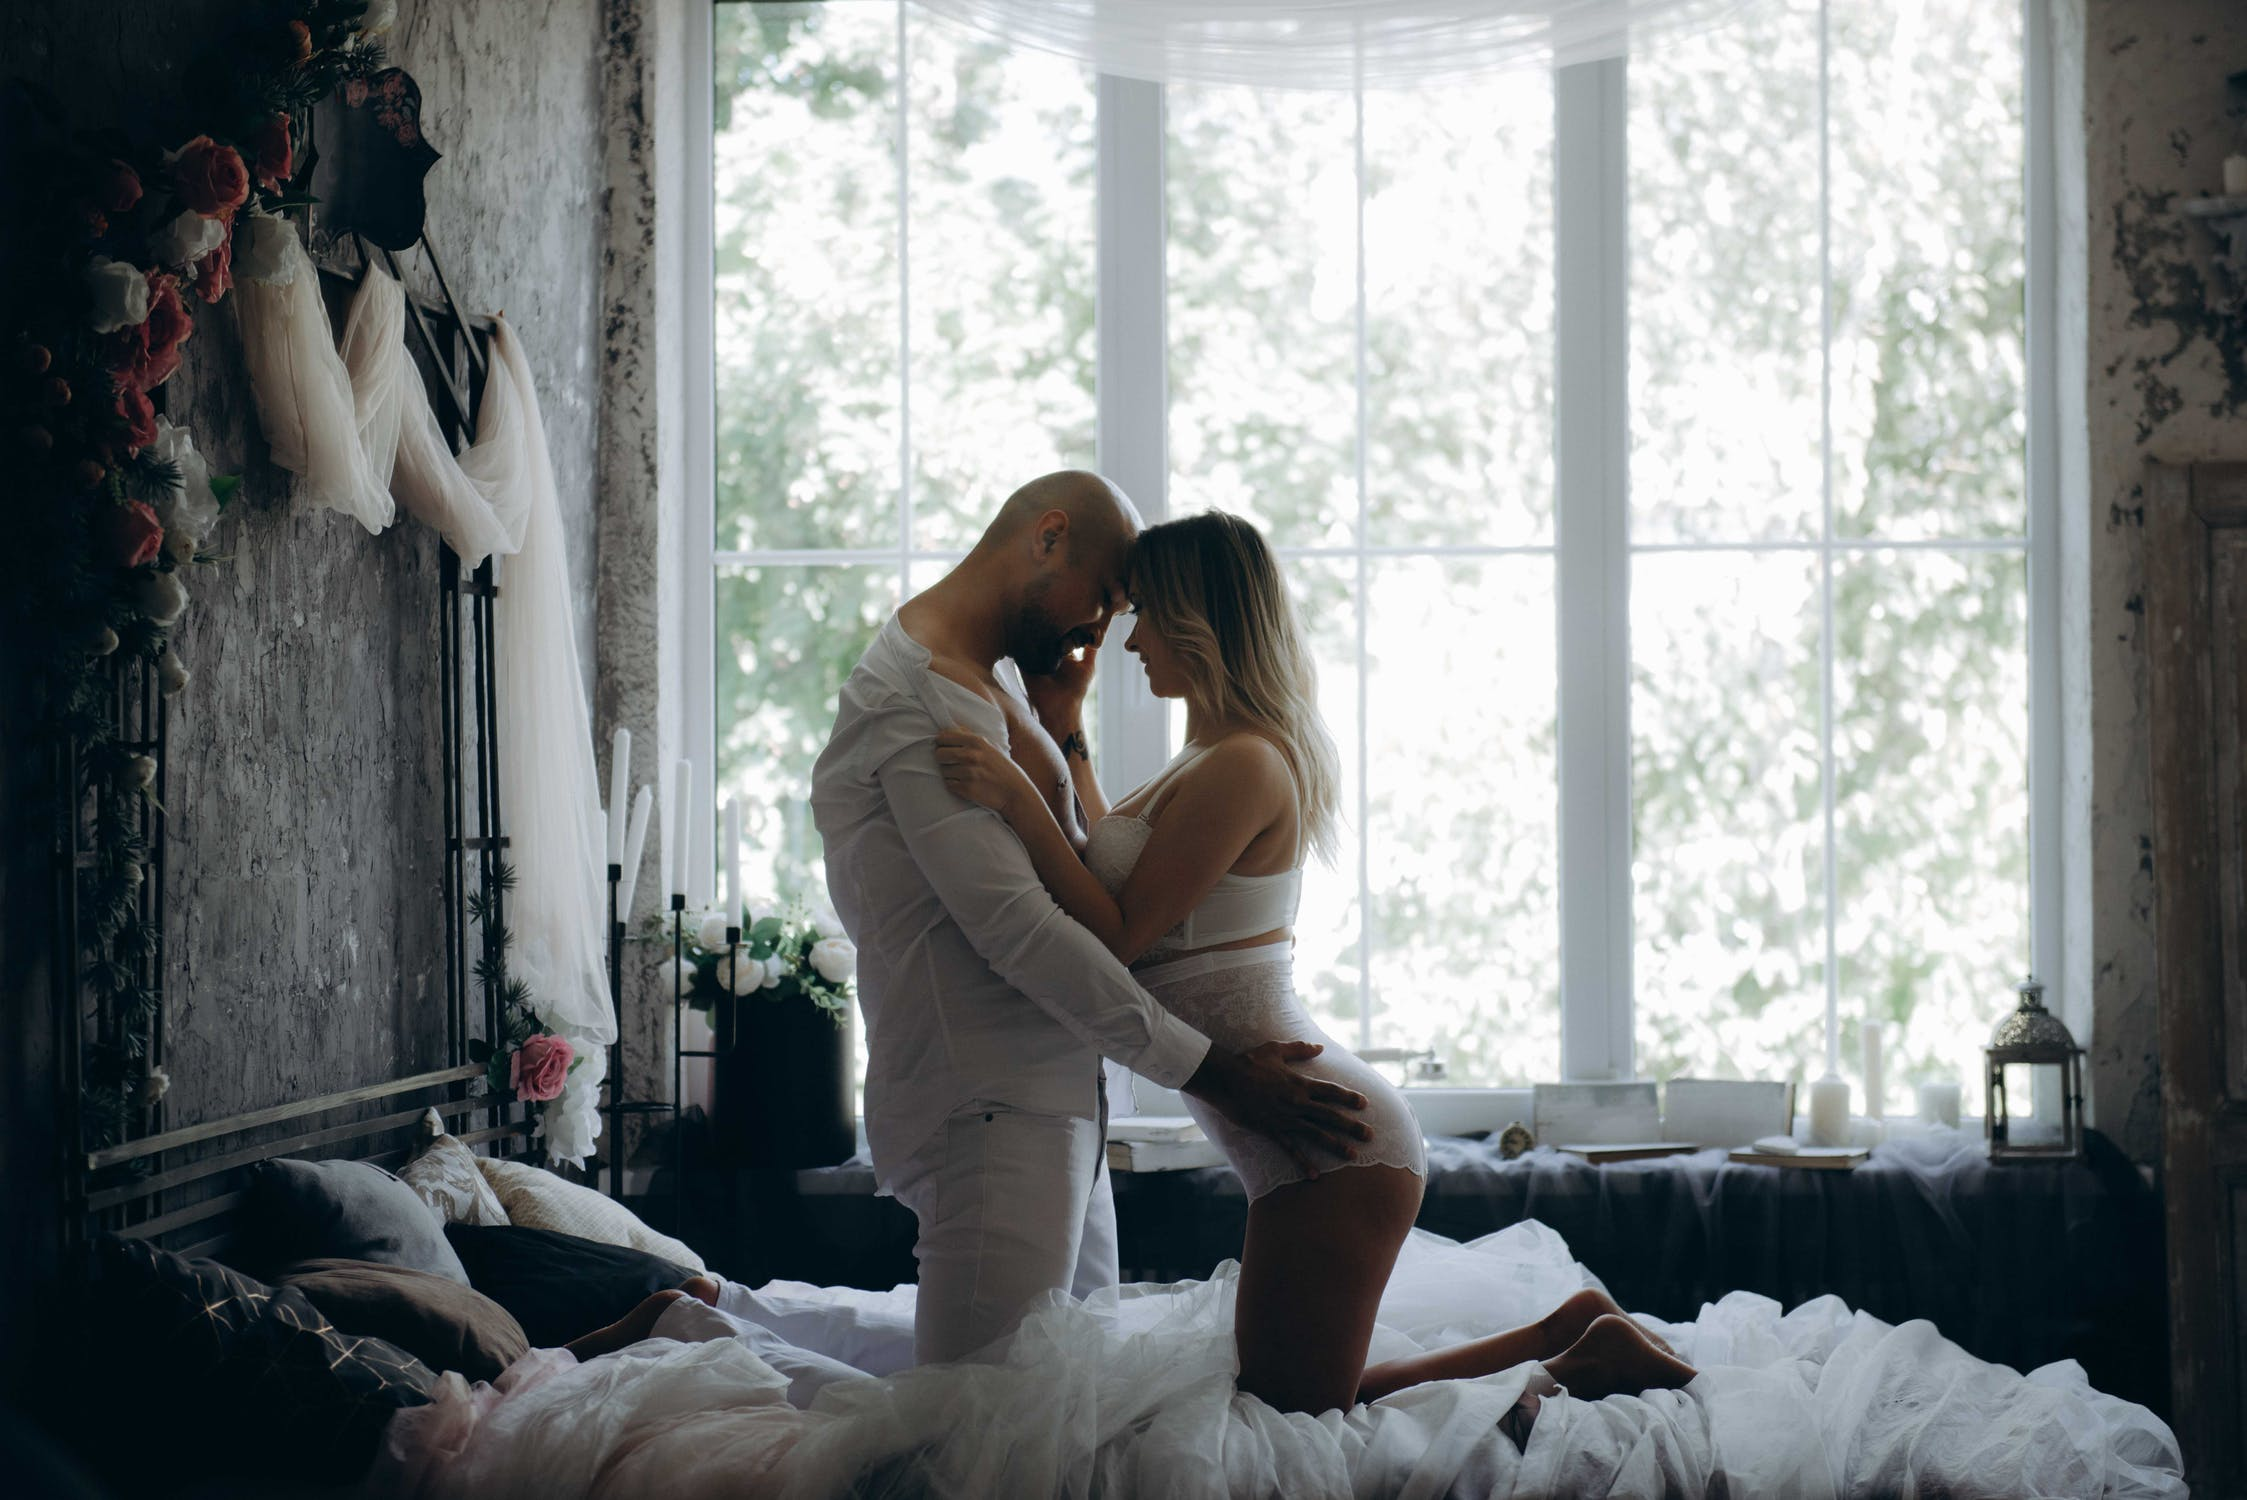 10 Things All Guys Want in Bed